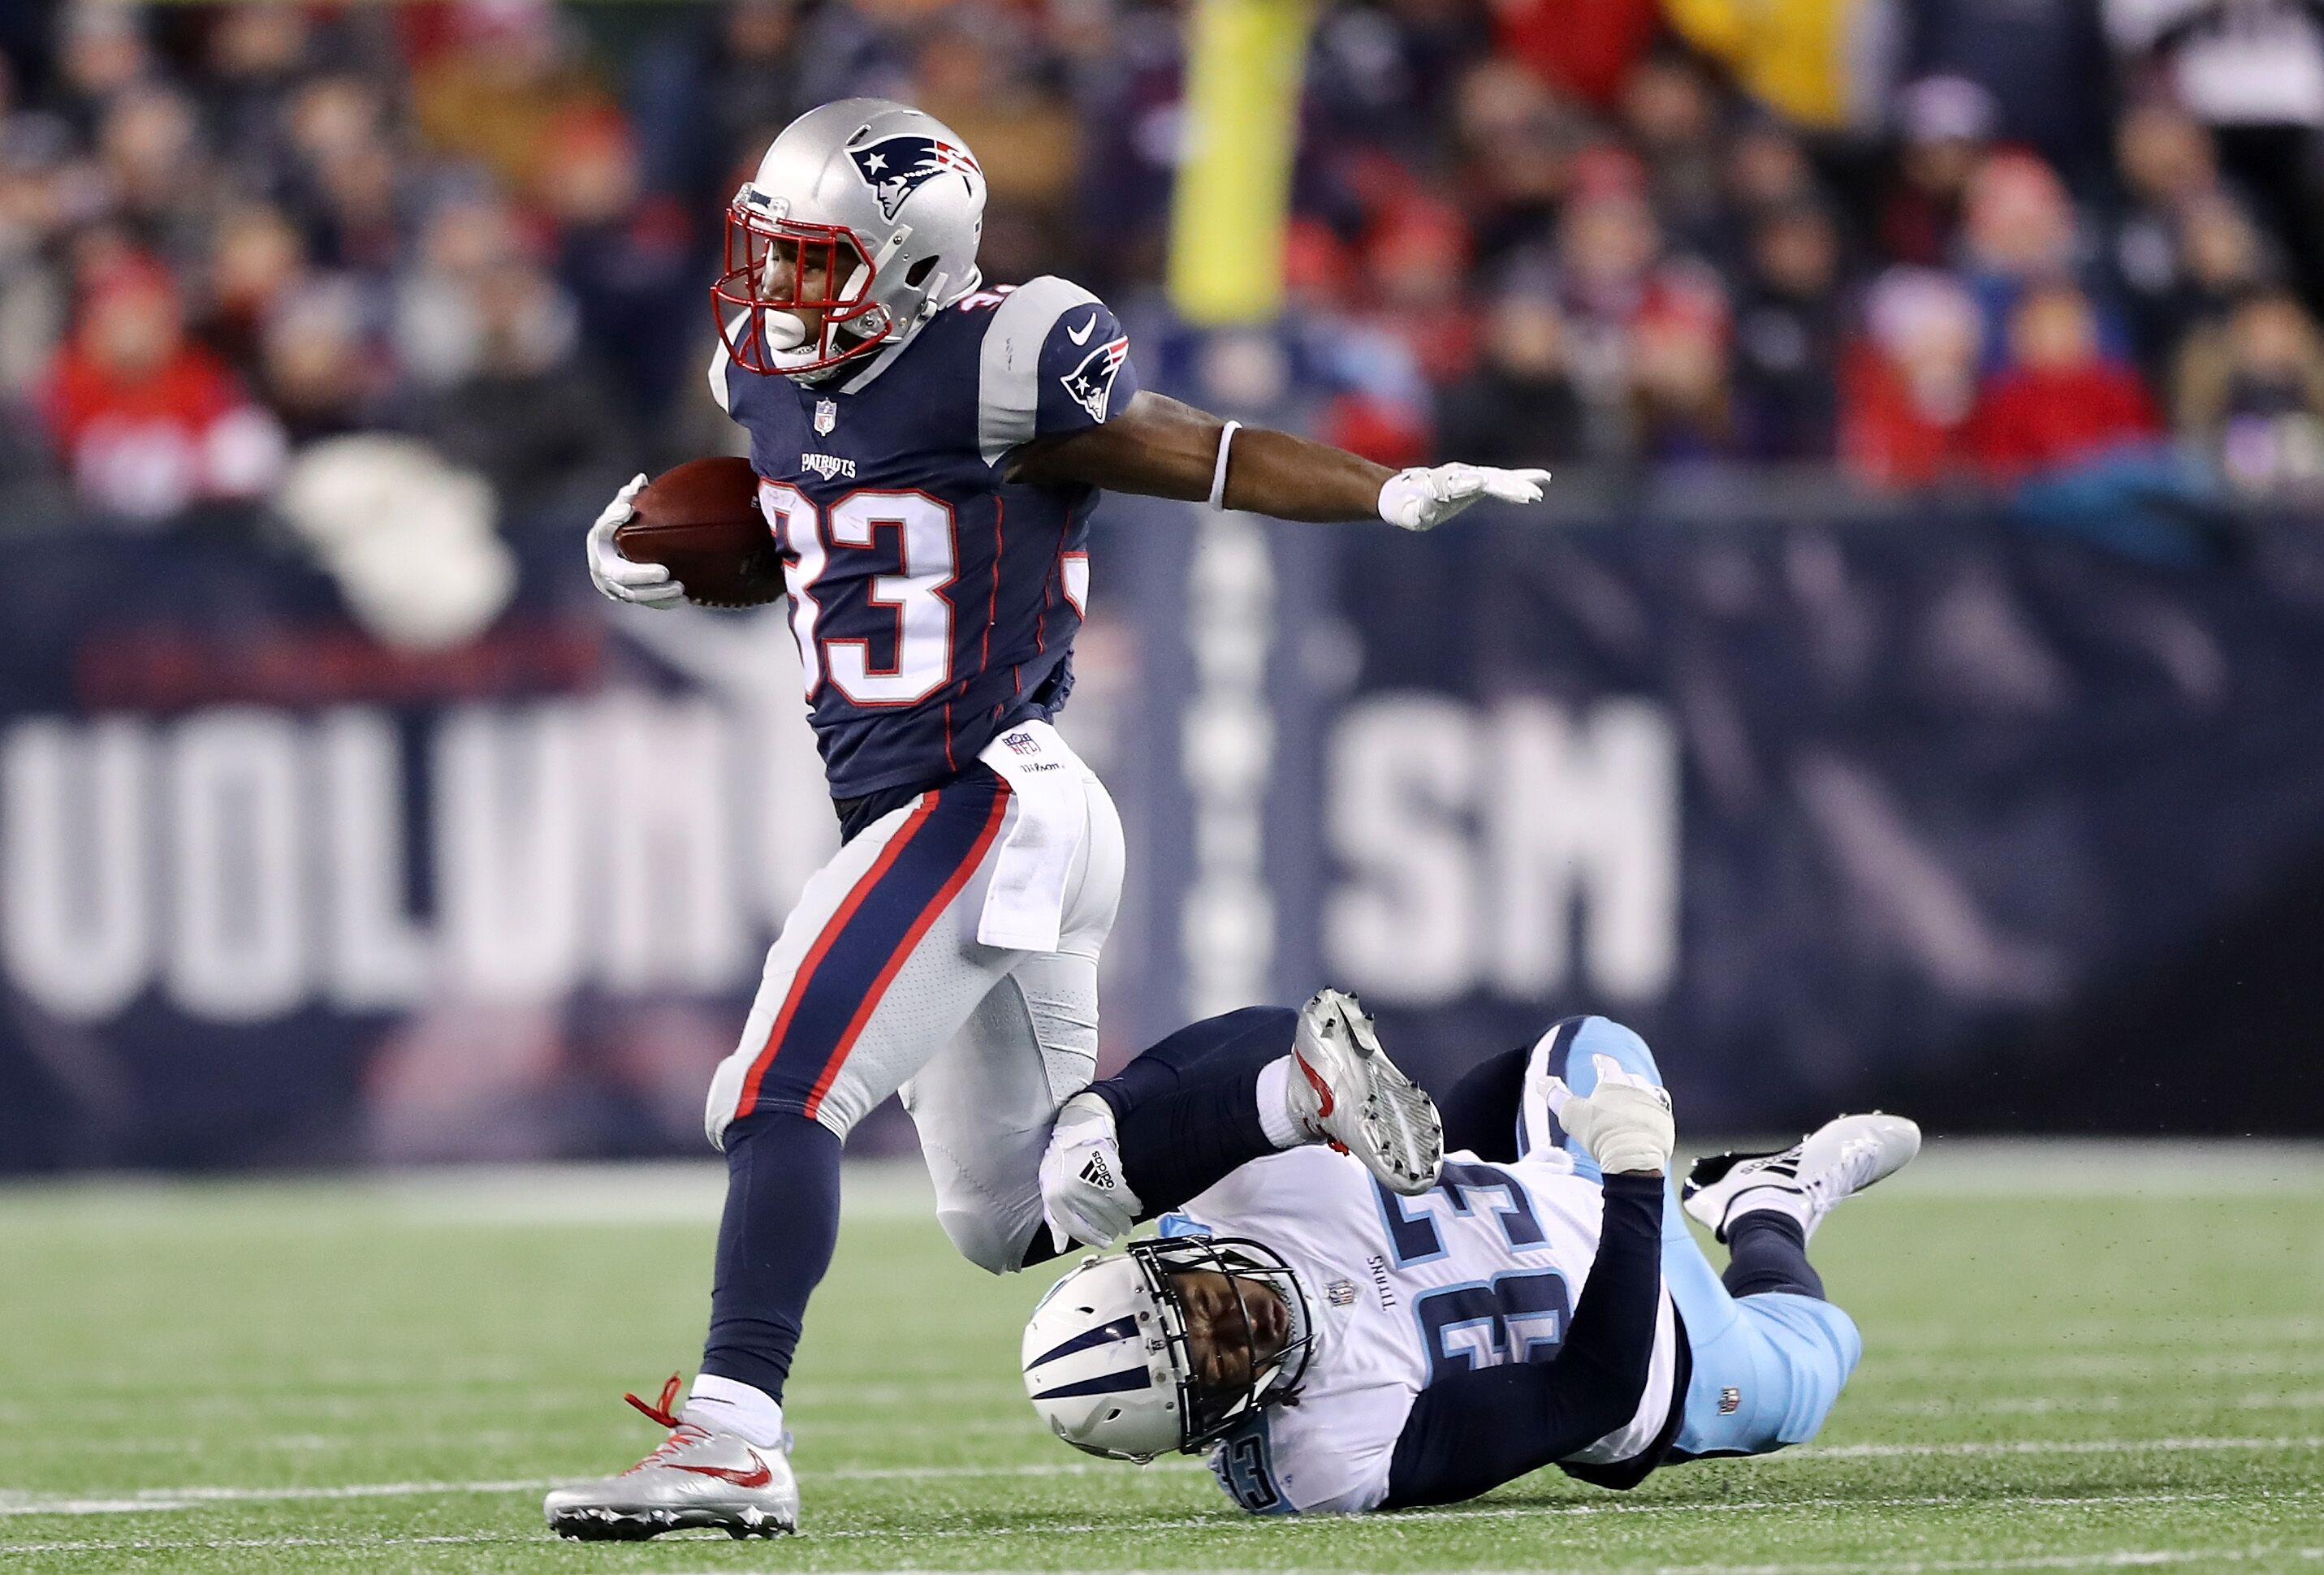 904648766-divisional-round-tennessee-titans-v-new-england-patriots.jpg